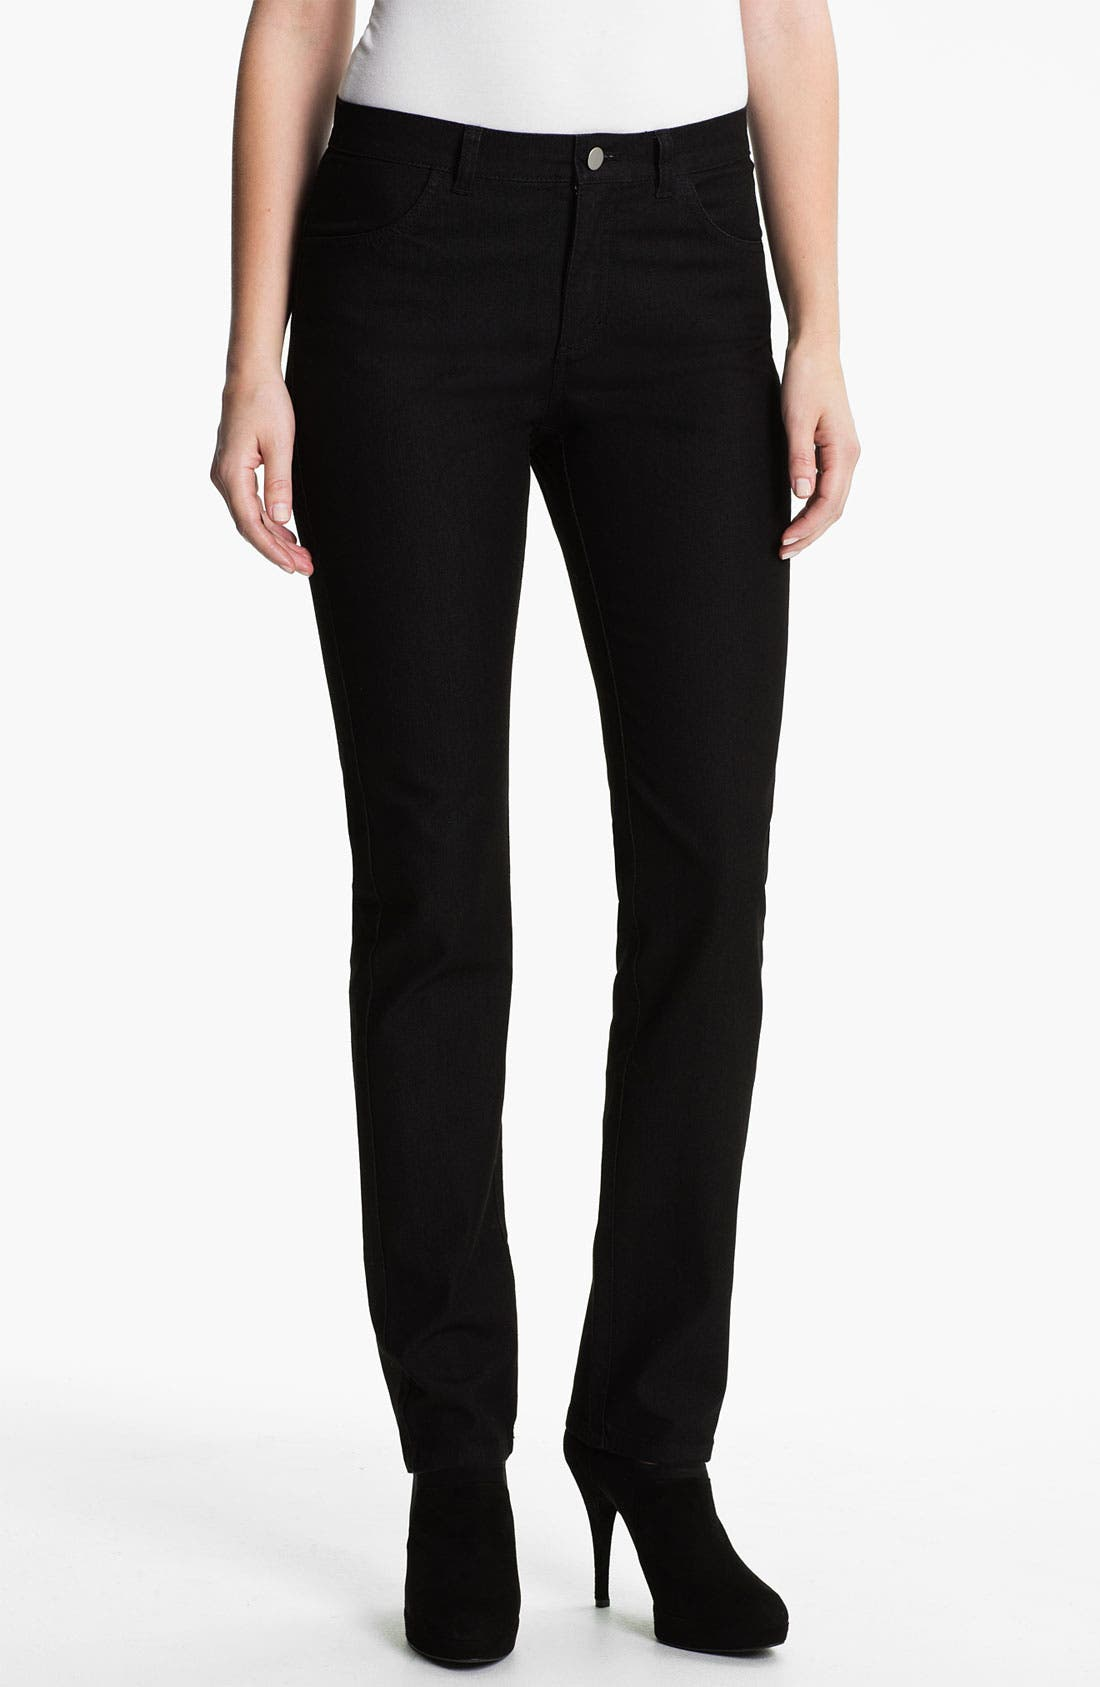 Alternate Image 1 Selected - Lafayette 148 New York Curvy Fit Jeans (Regular & Petite)